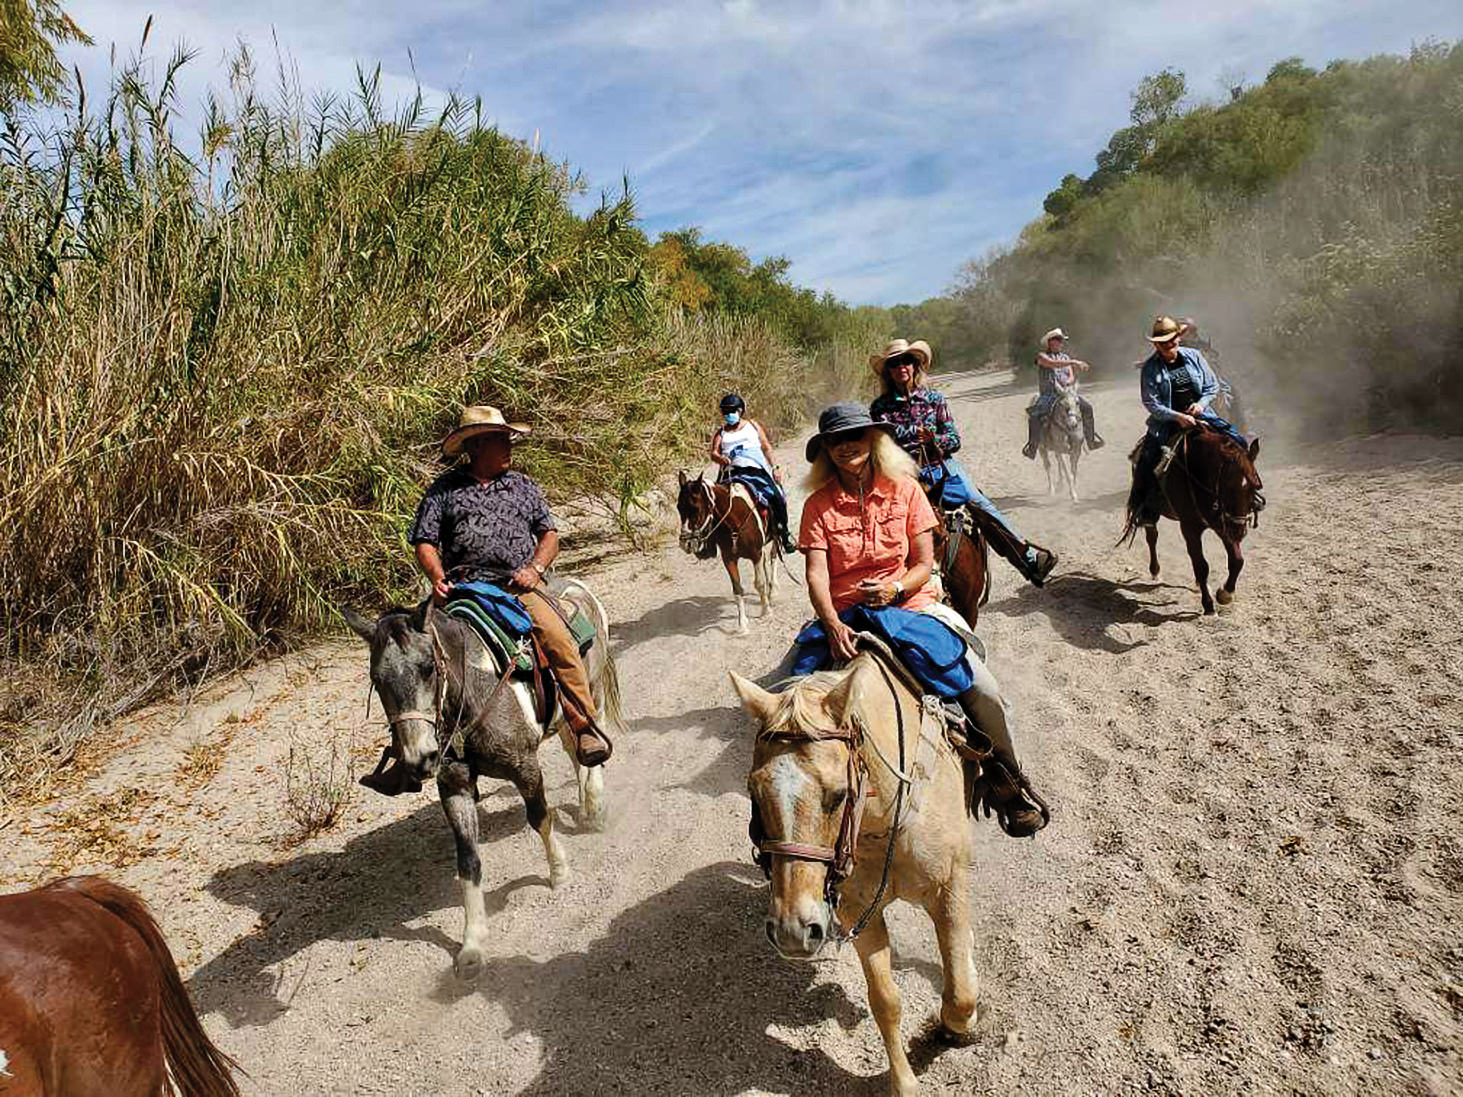 Front to back: Susan Stratton Miller, Rob Densmore, Tess Denmore, Wolfe Tombe, Kaye McMillan, Neil Uscier (talking to Joyce, the wrangler). We just see the hind end of Mike Miller's horse in the front.